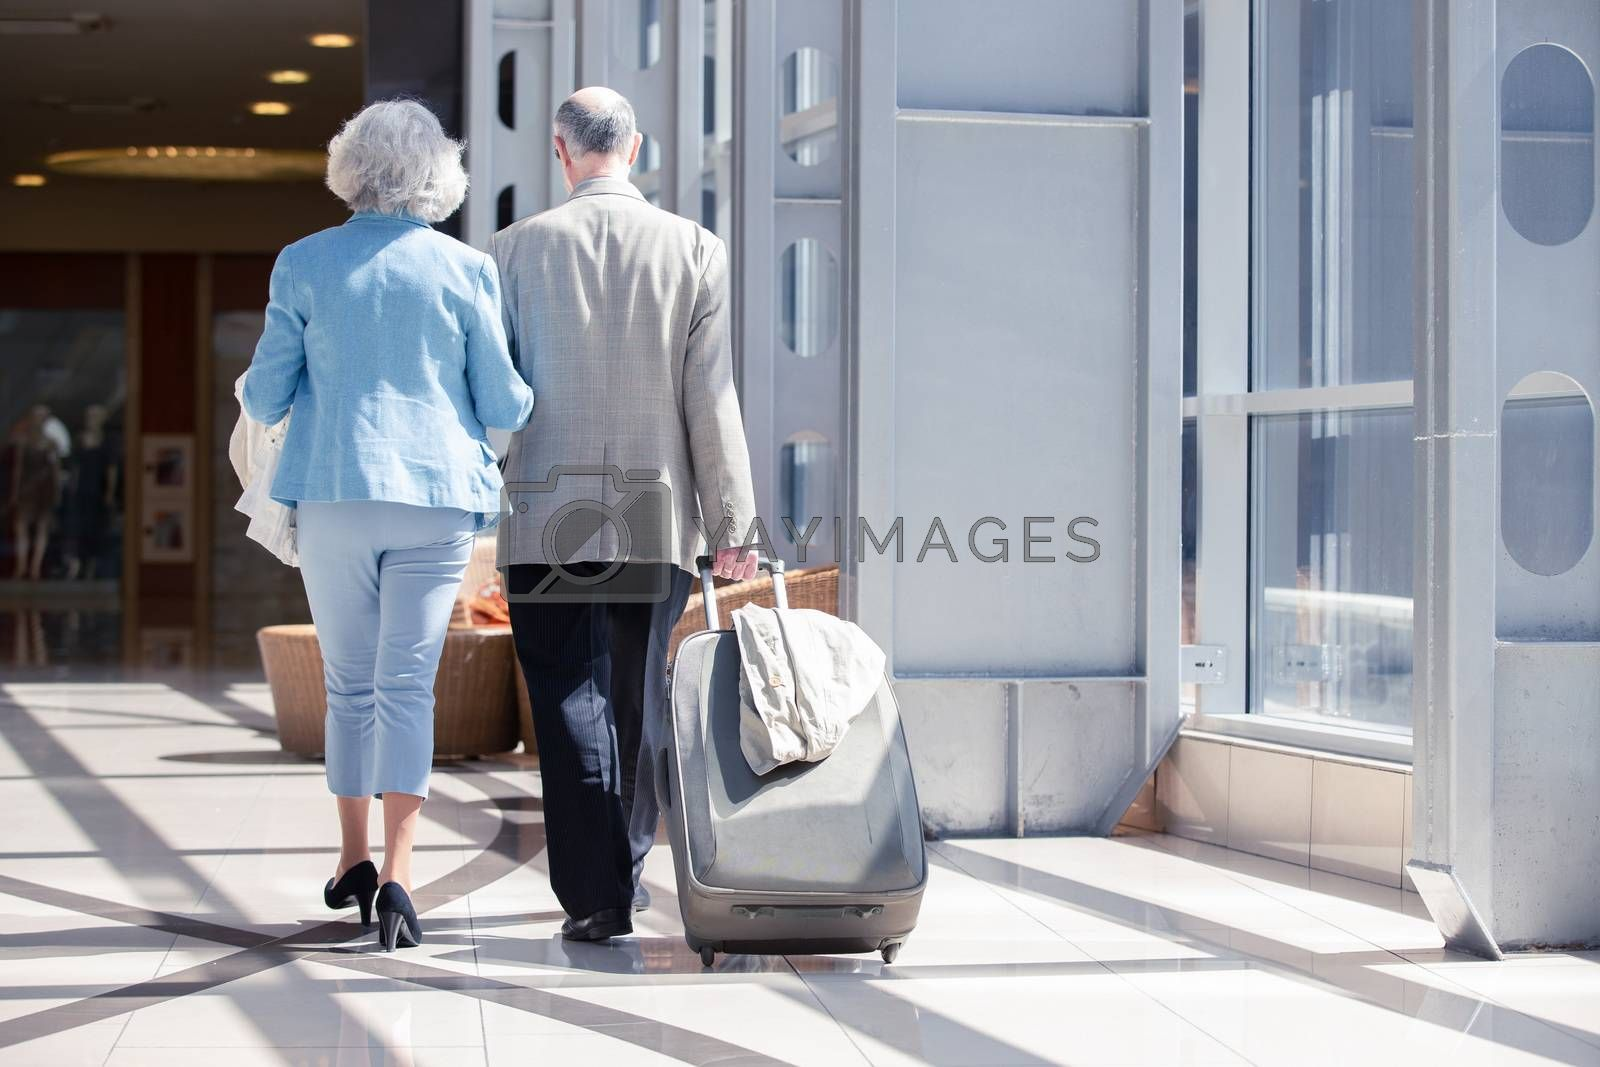 Senior couple in airport walking with suitcase. Holiday travel background.